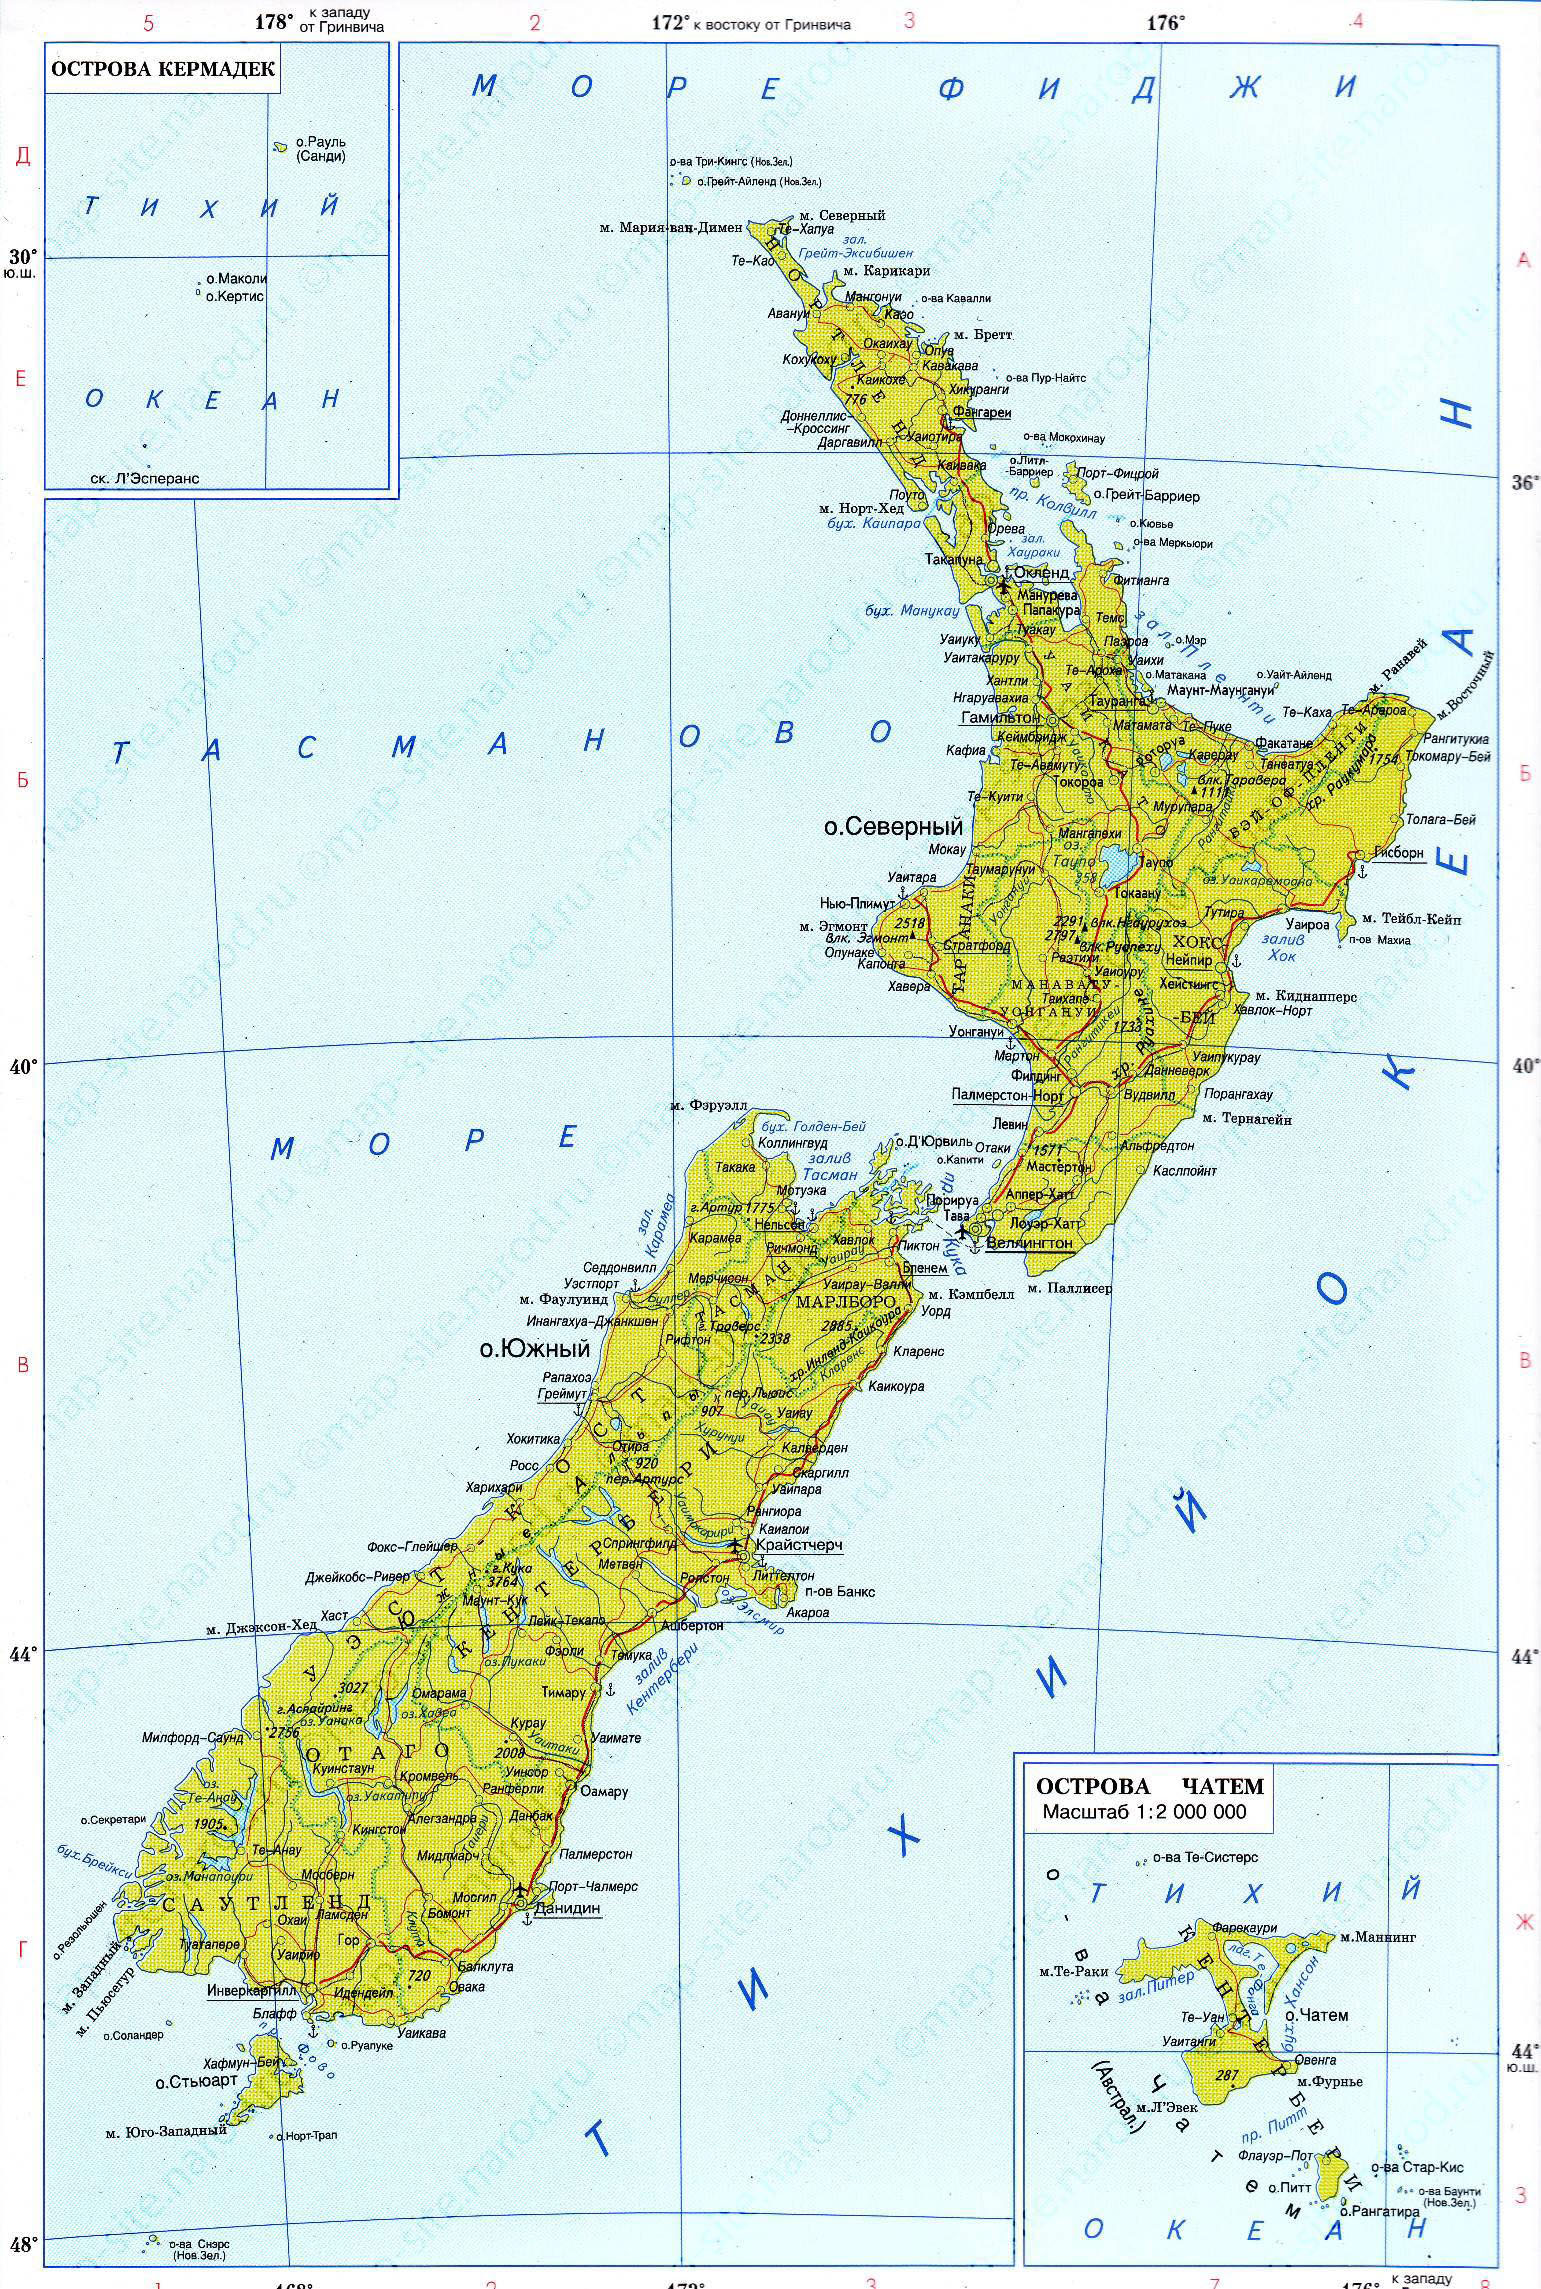 Detailed Map Of New Zealand.Large Detailed Political Map Of New Zealand With Roads And Cities In